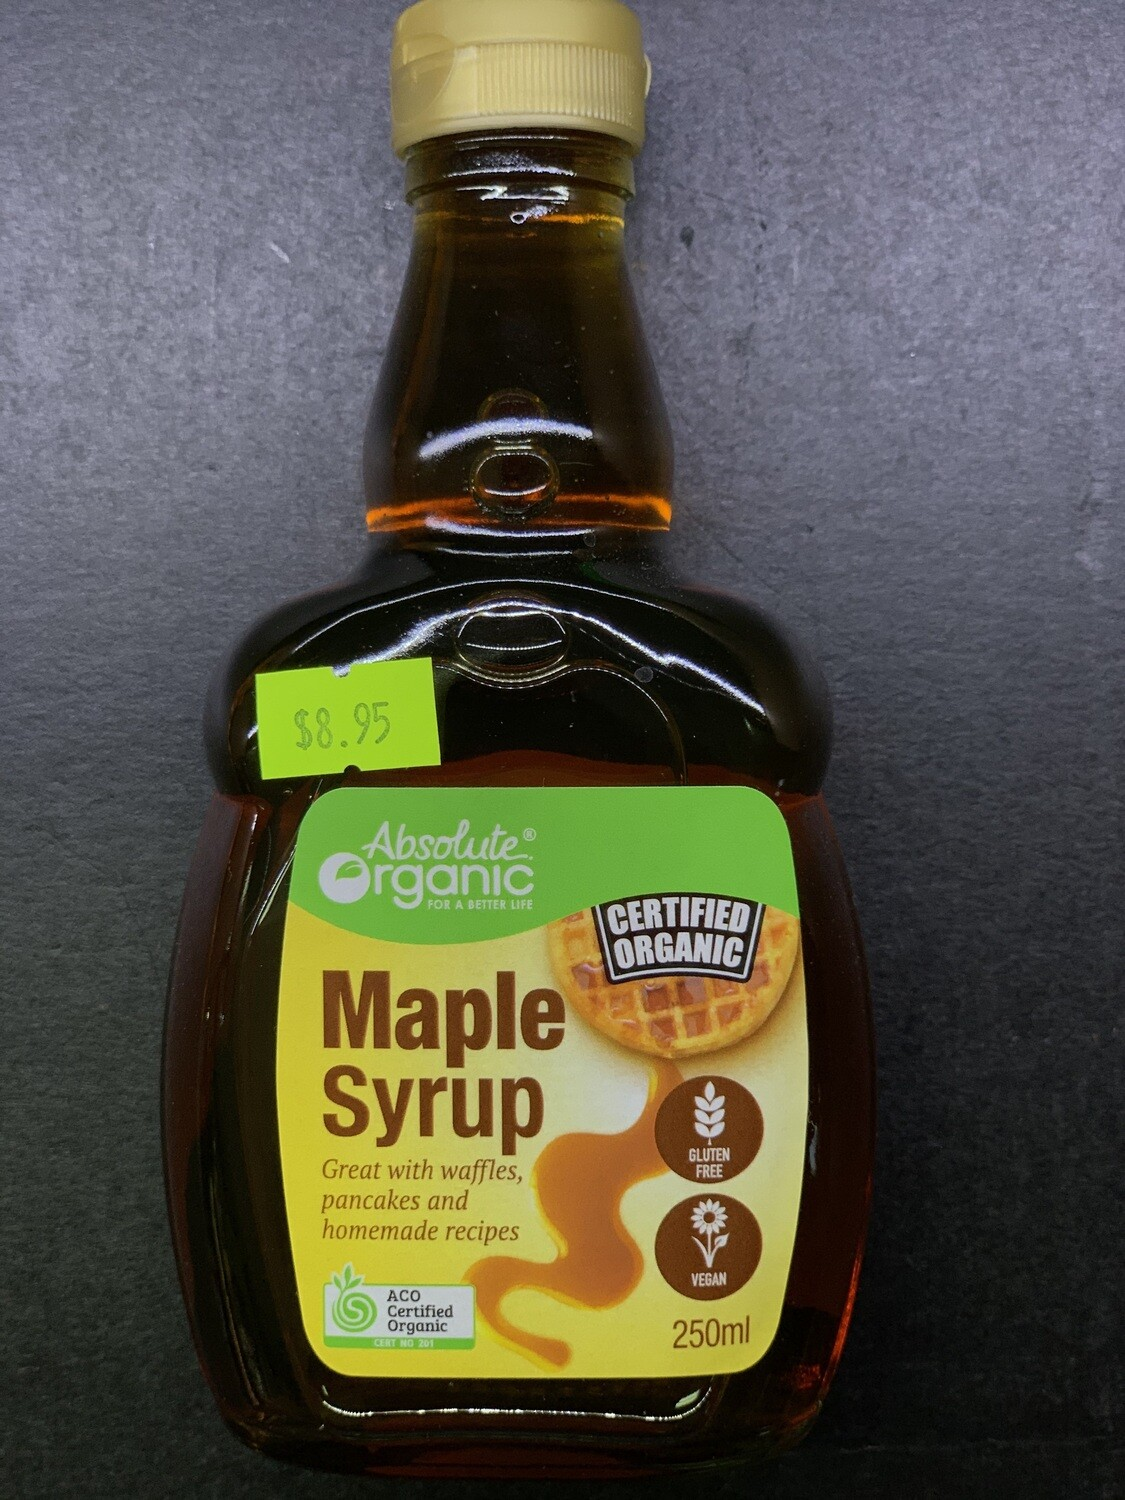 Maple Syrup (250ml)